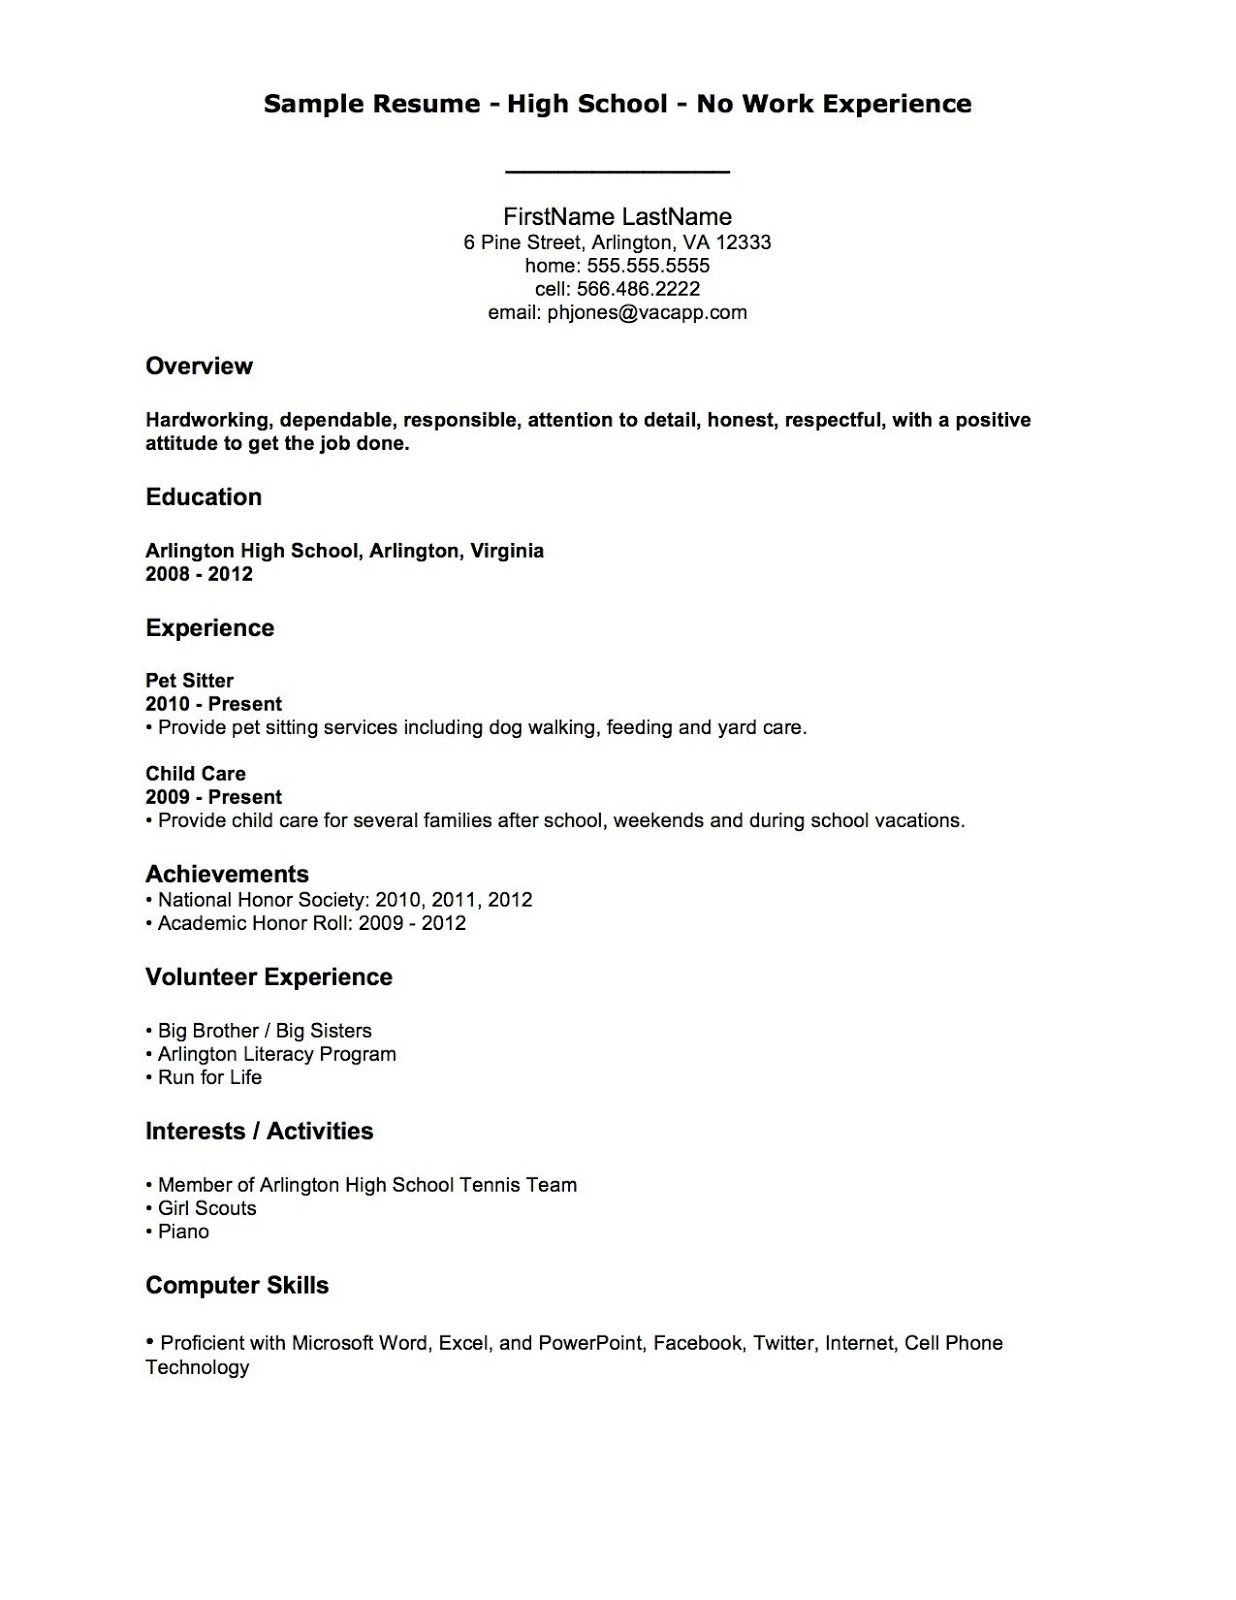 how to make a quick resume resume design easy quick resume ...